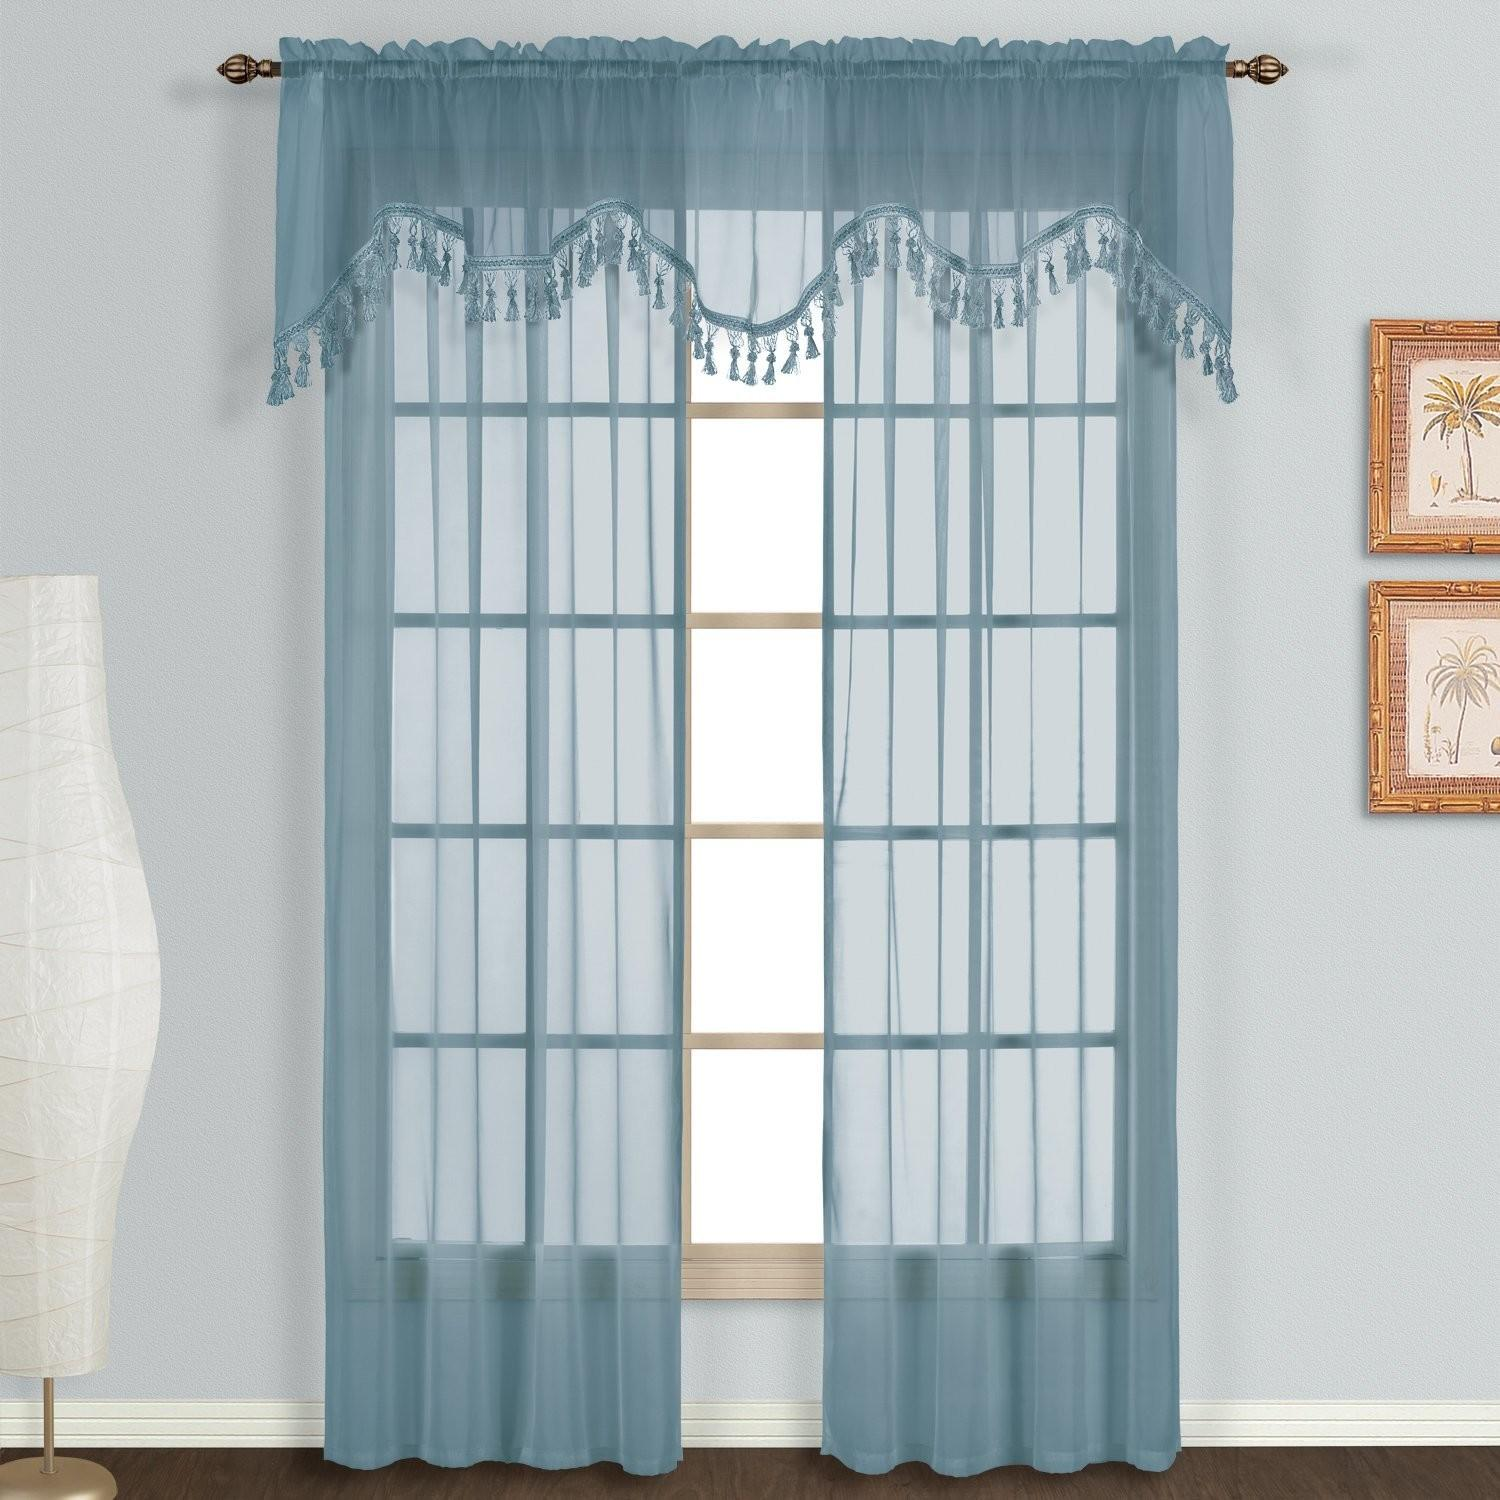 100 Small Sheer Window Curtains Cabinet Kitchen